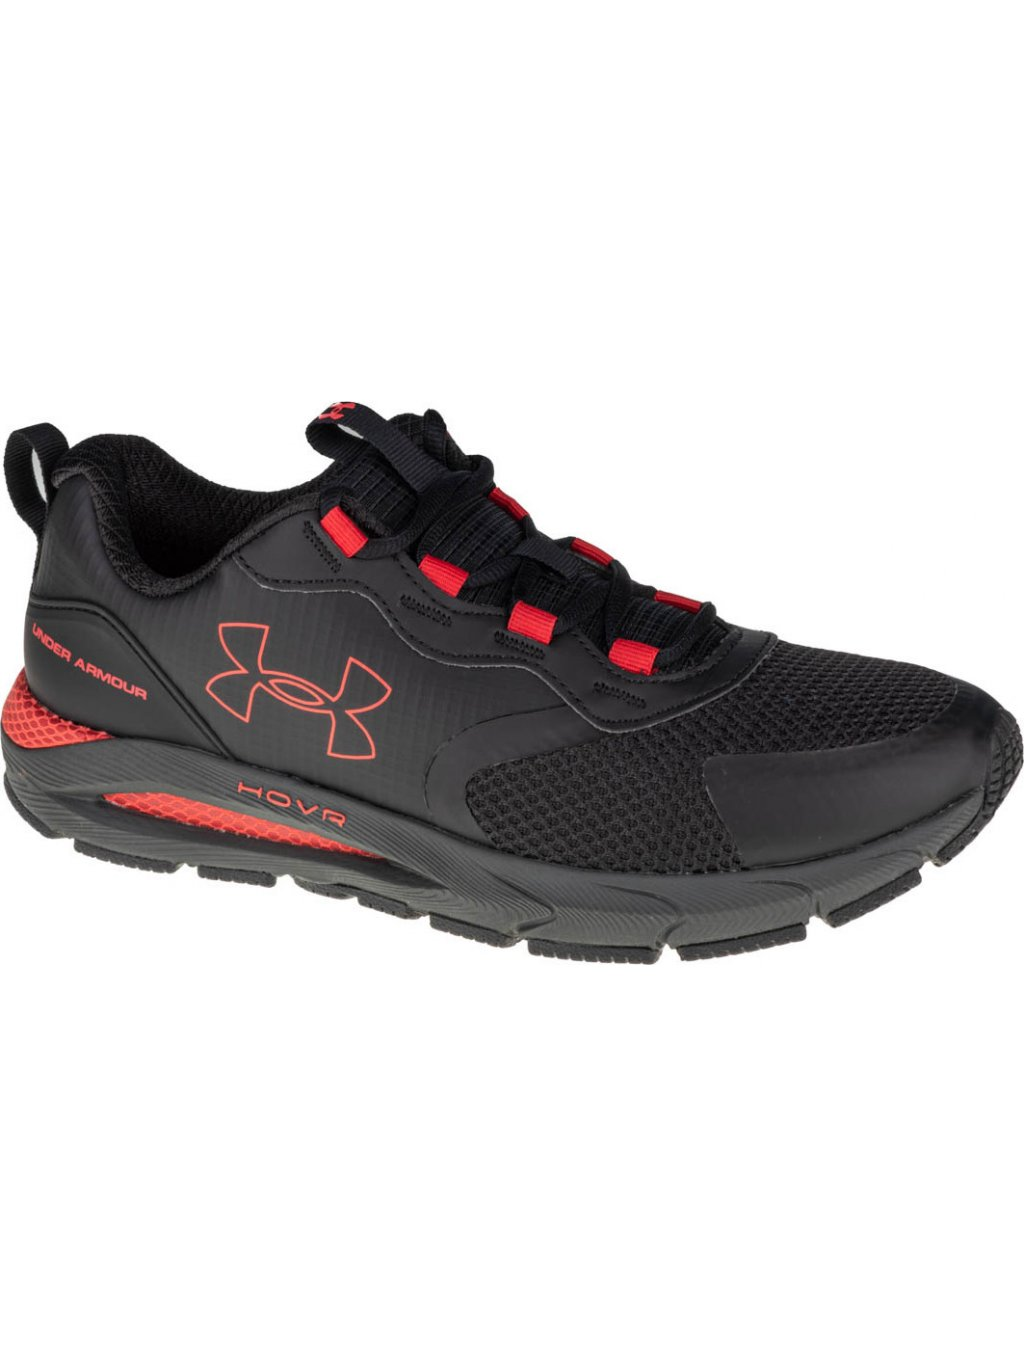 UNDER ARMOUR HOVR SONIC STRT 3024369-002